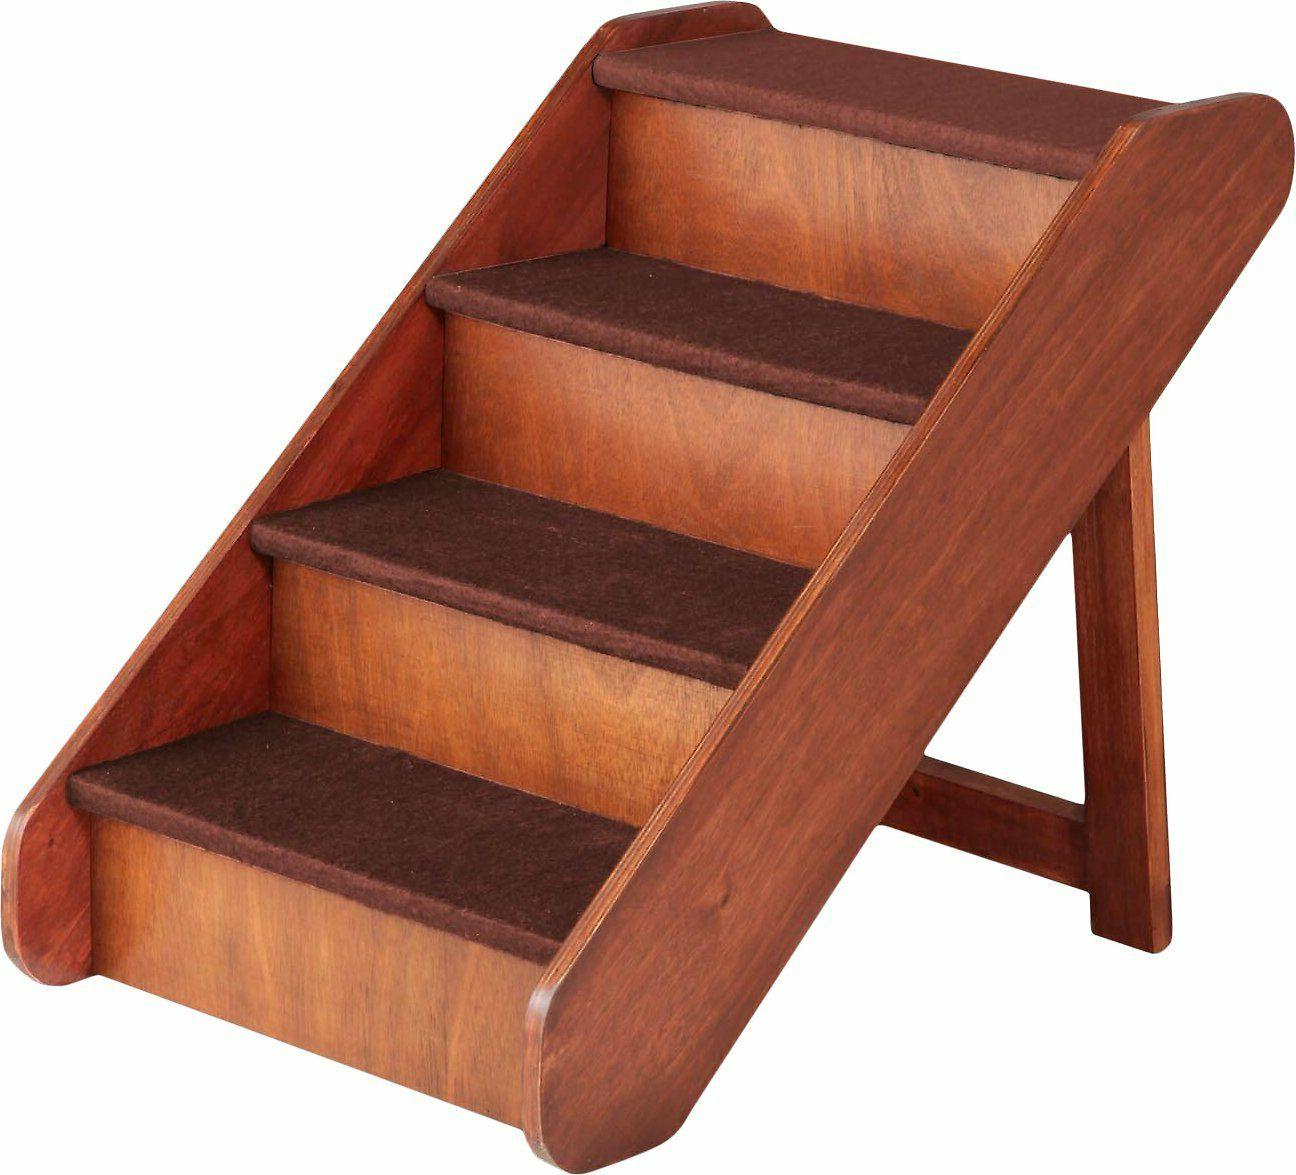 Pet Stairs Handmade Wooden Dog Cat Steps Bed Couch Walnut Pe